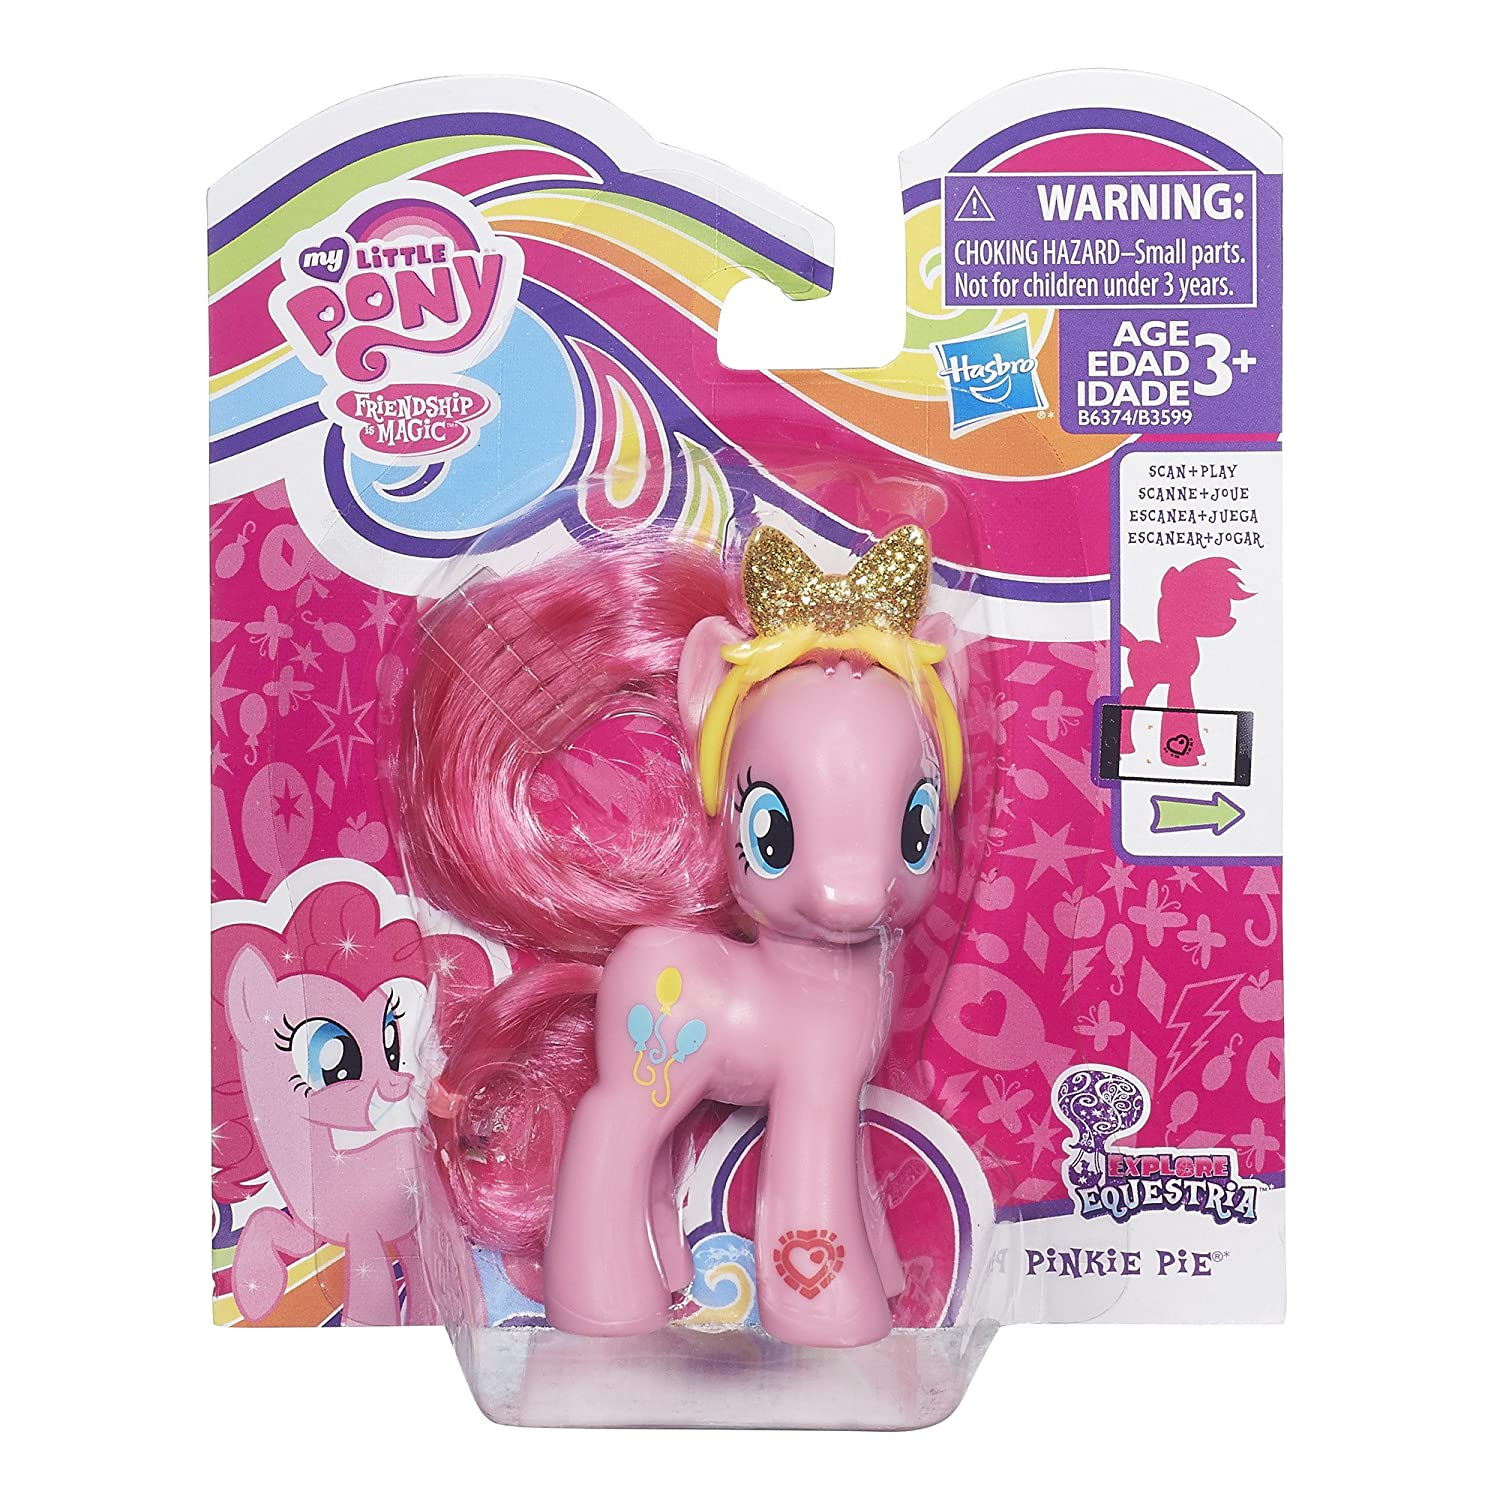 My Little Pony Friendship Is Magic Pinkie Pie Figure Luggage Tag Toys Games